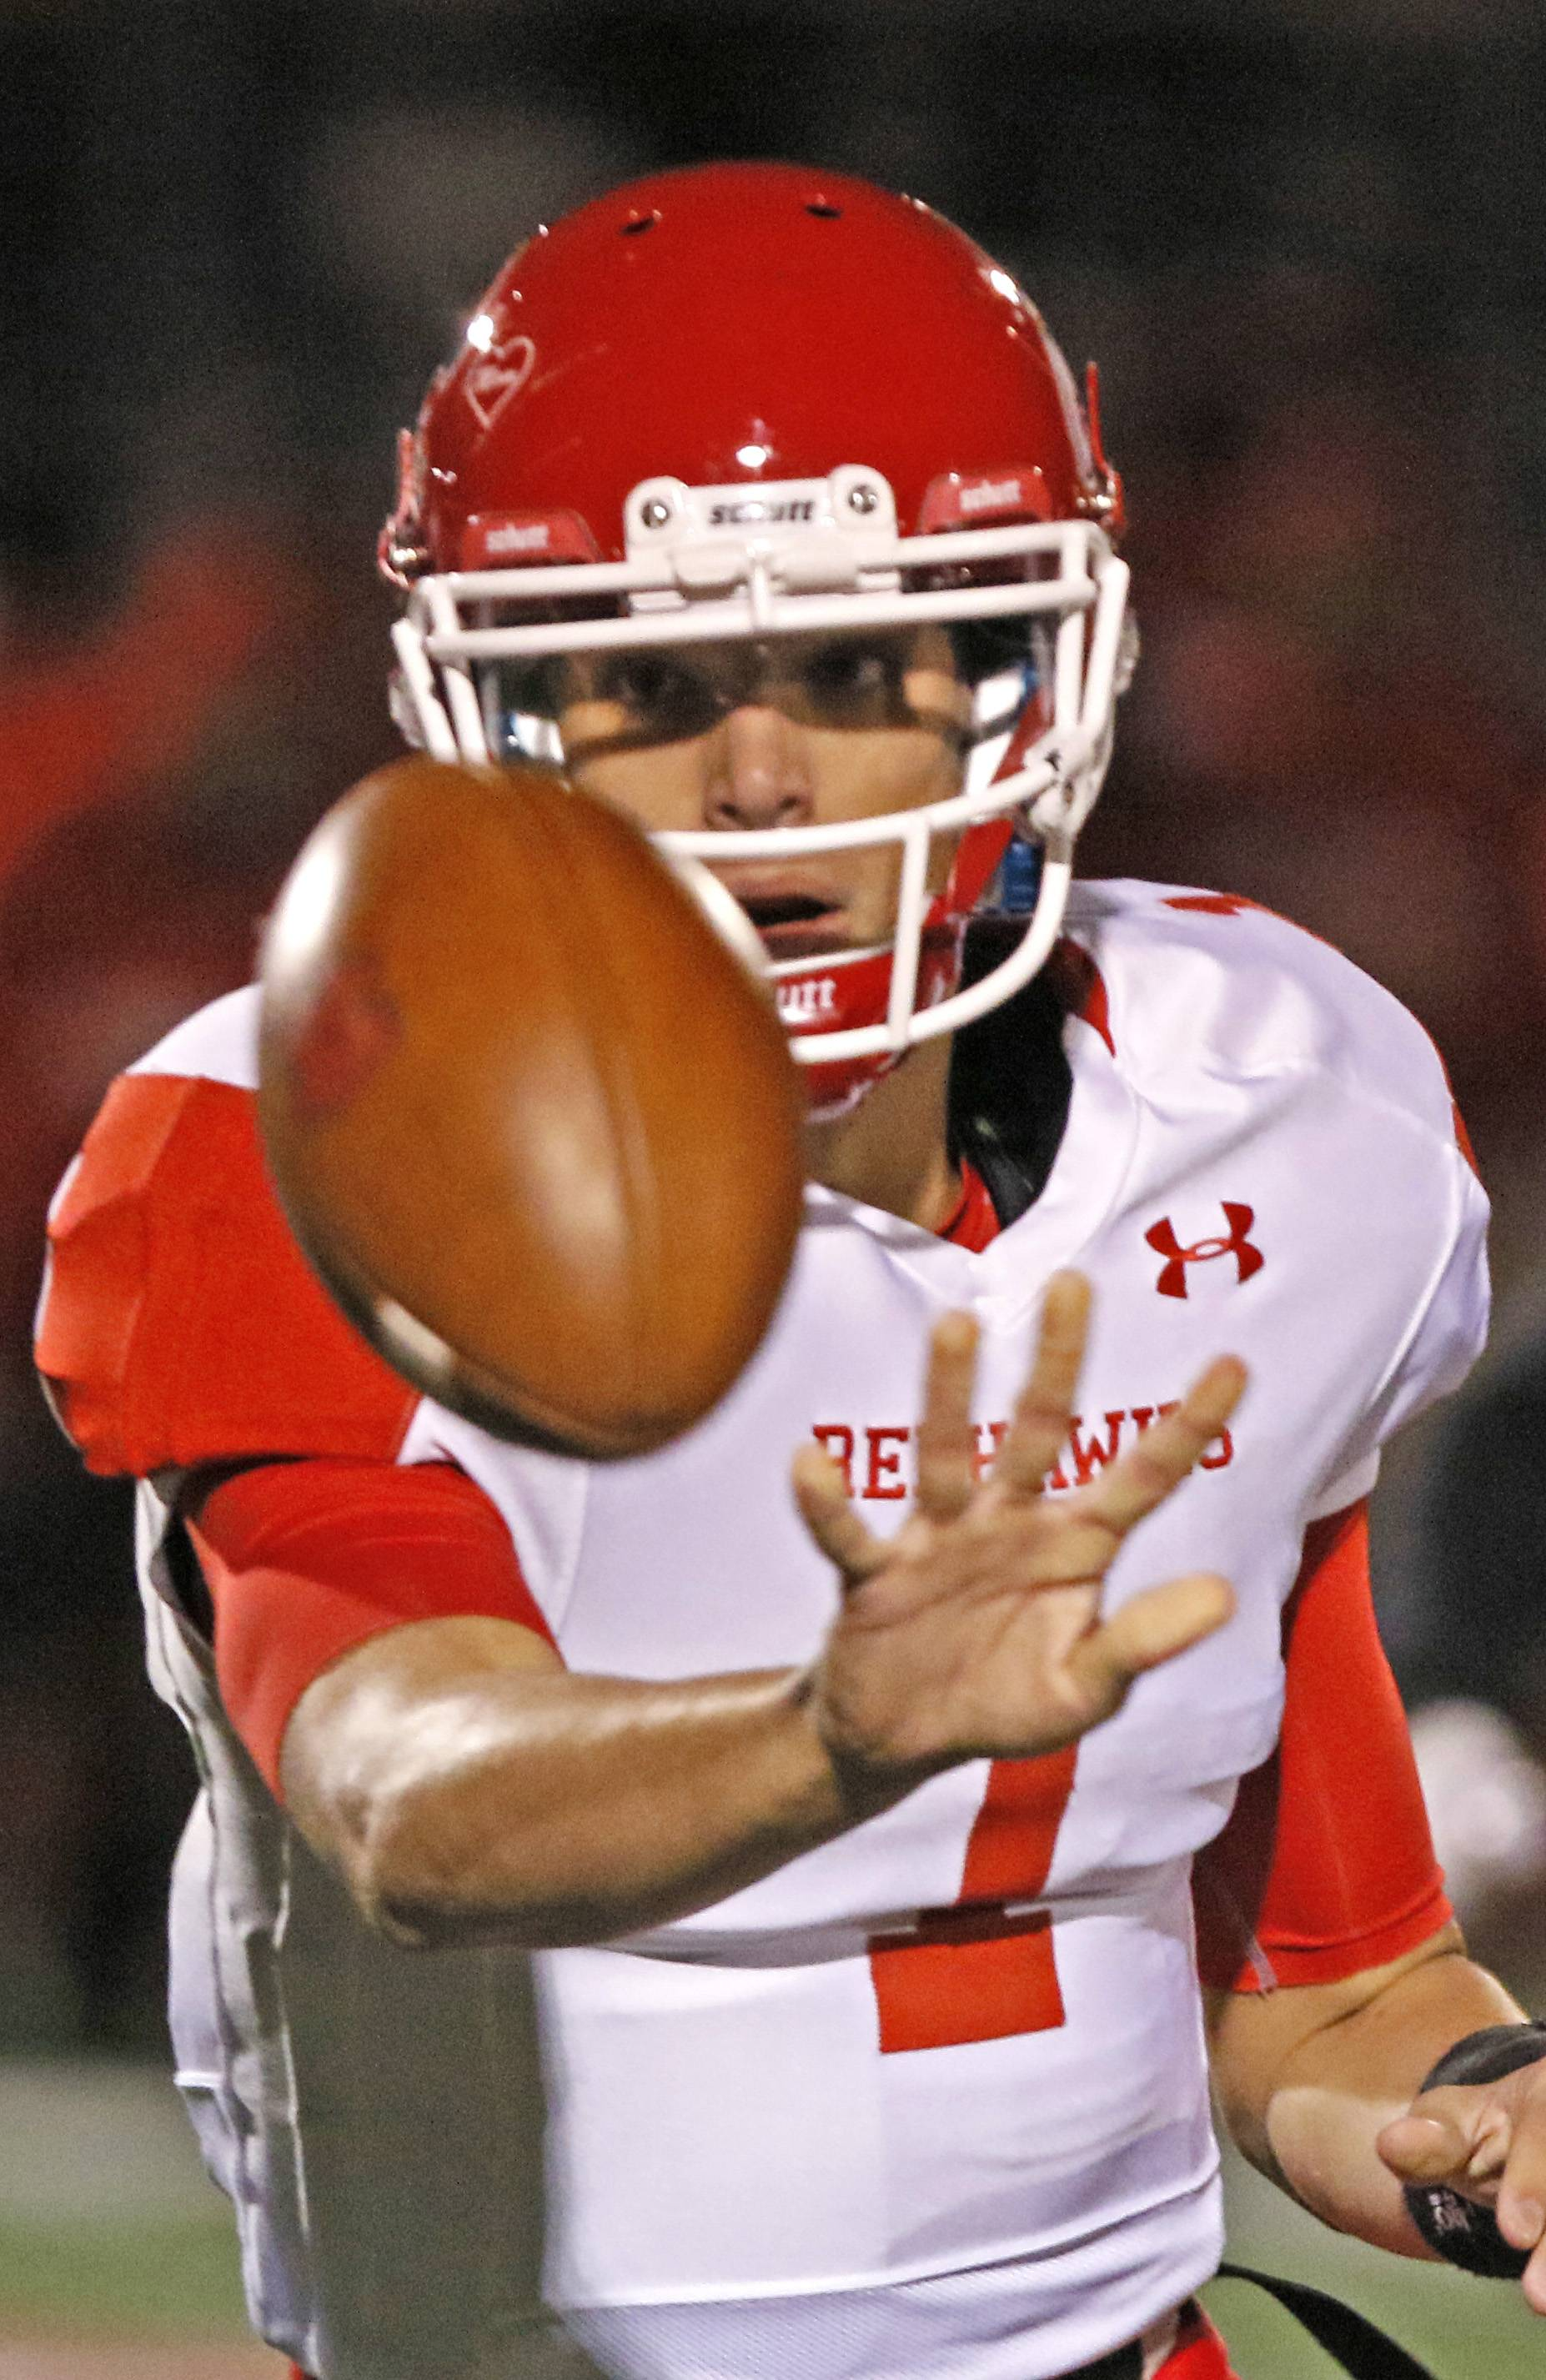 Naperville Central quarterback Payton Thorne throws to an outside receiver against Homewood Flossmoor during second round Class 8A football playoffs.